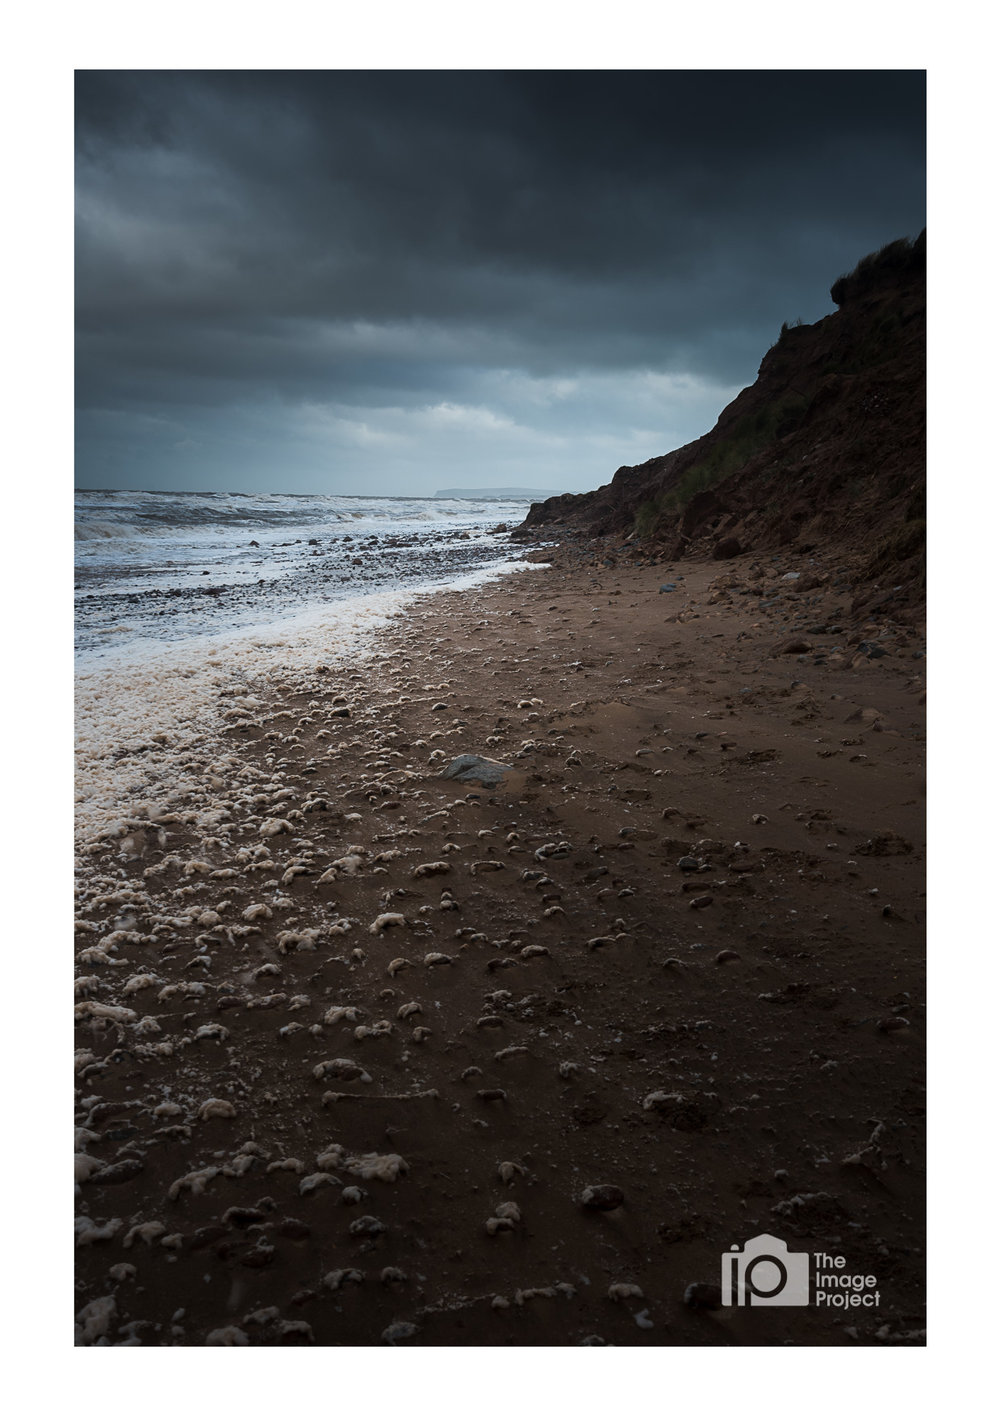 Moody skies on a frothy beach, Drigg